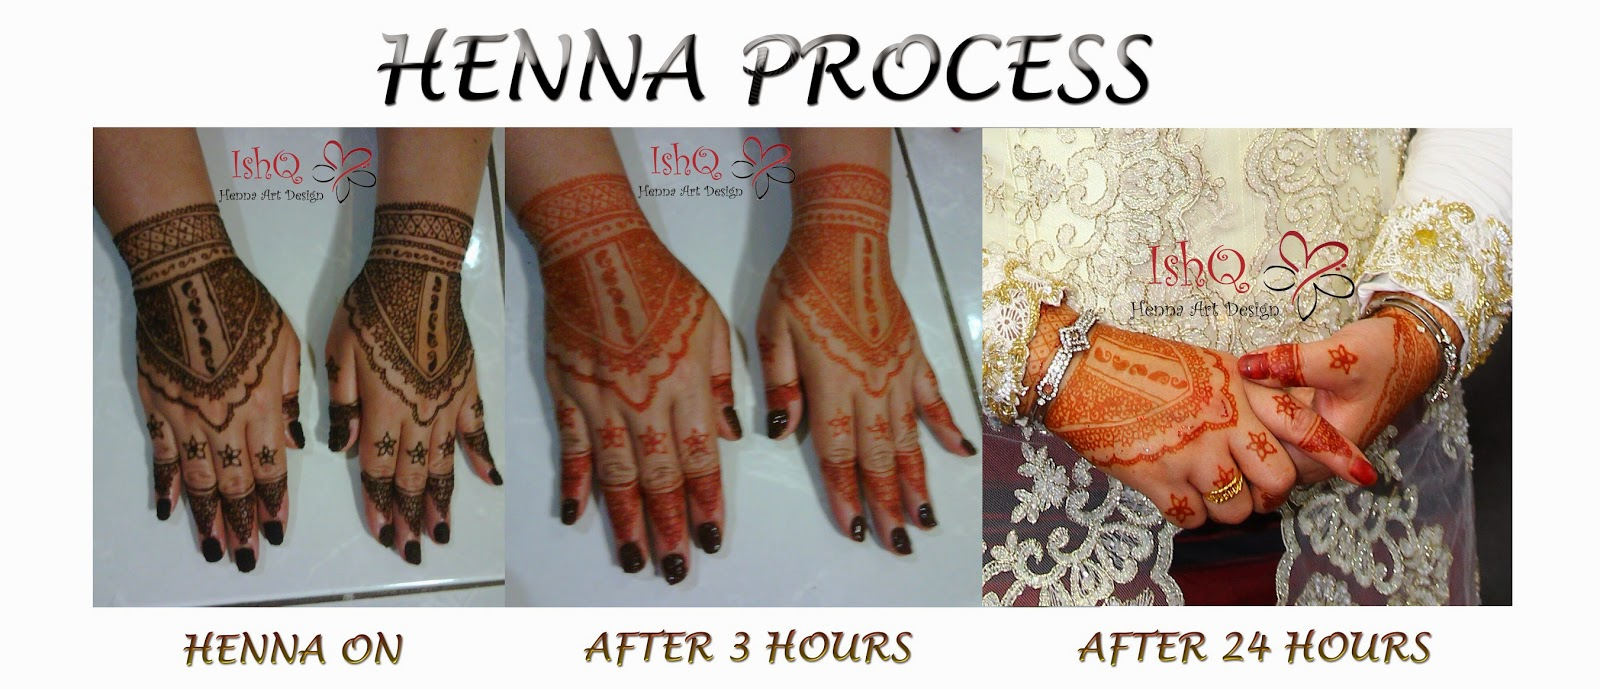 ISHQ HENNA ART DESIGN April 2014